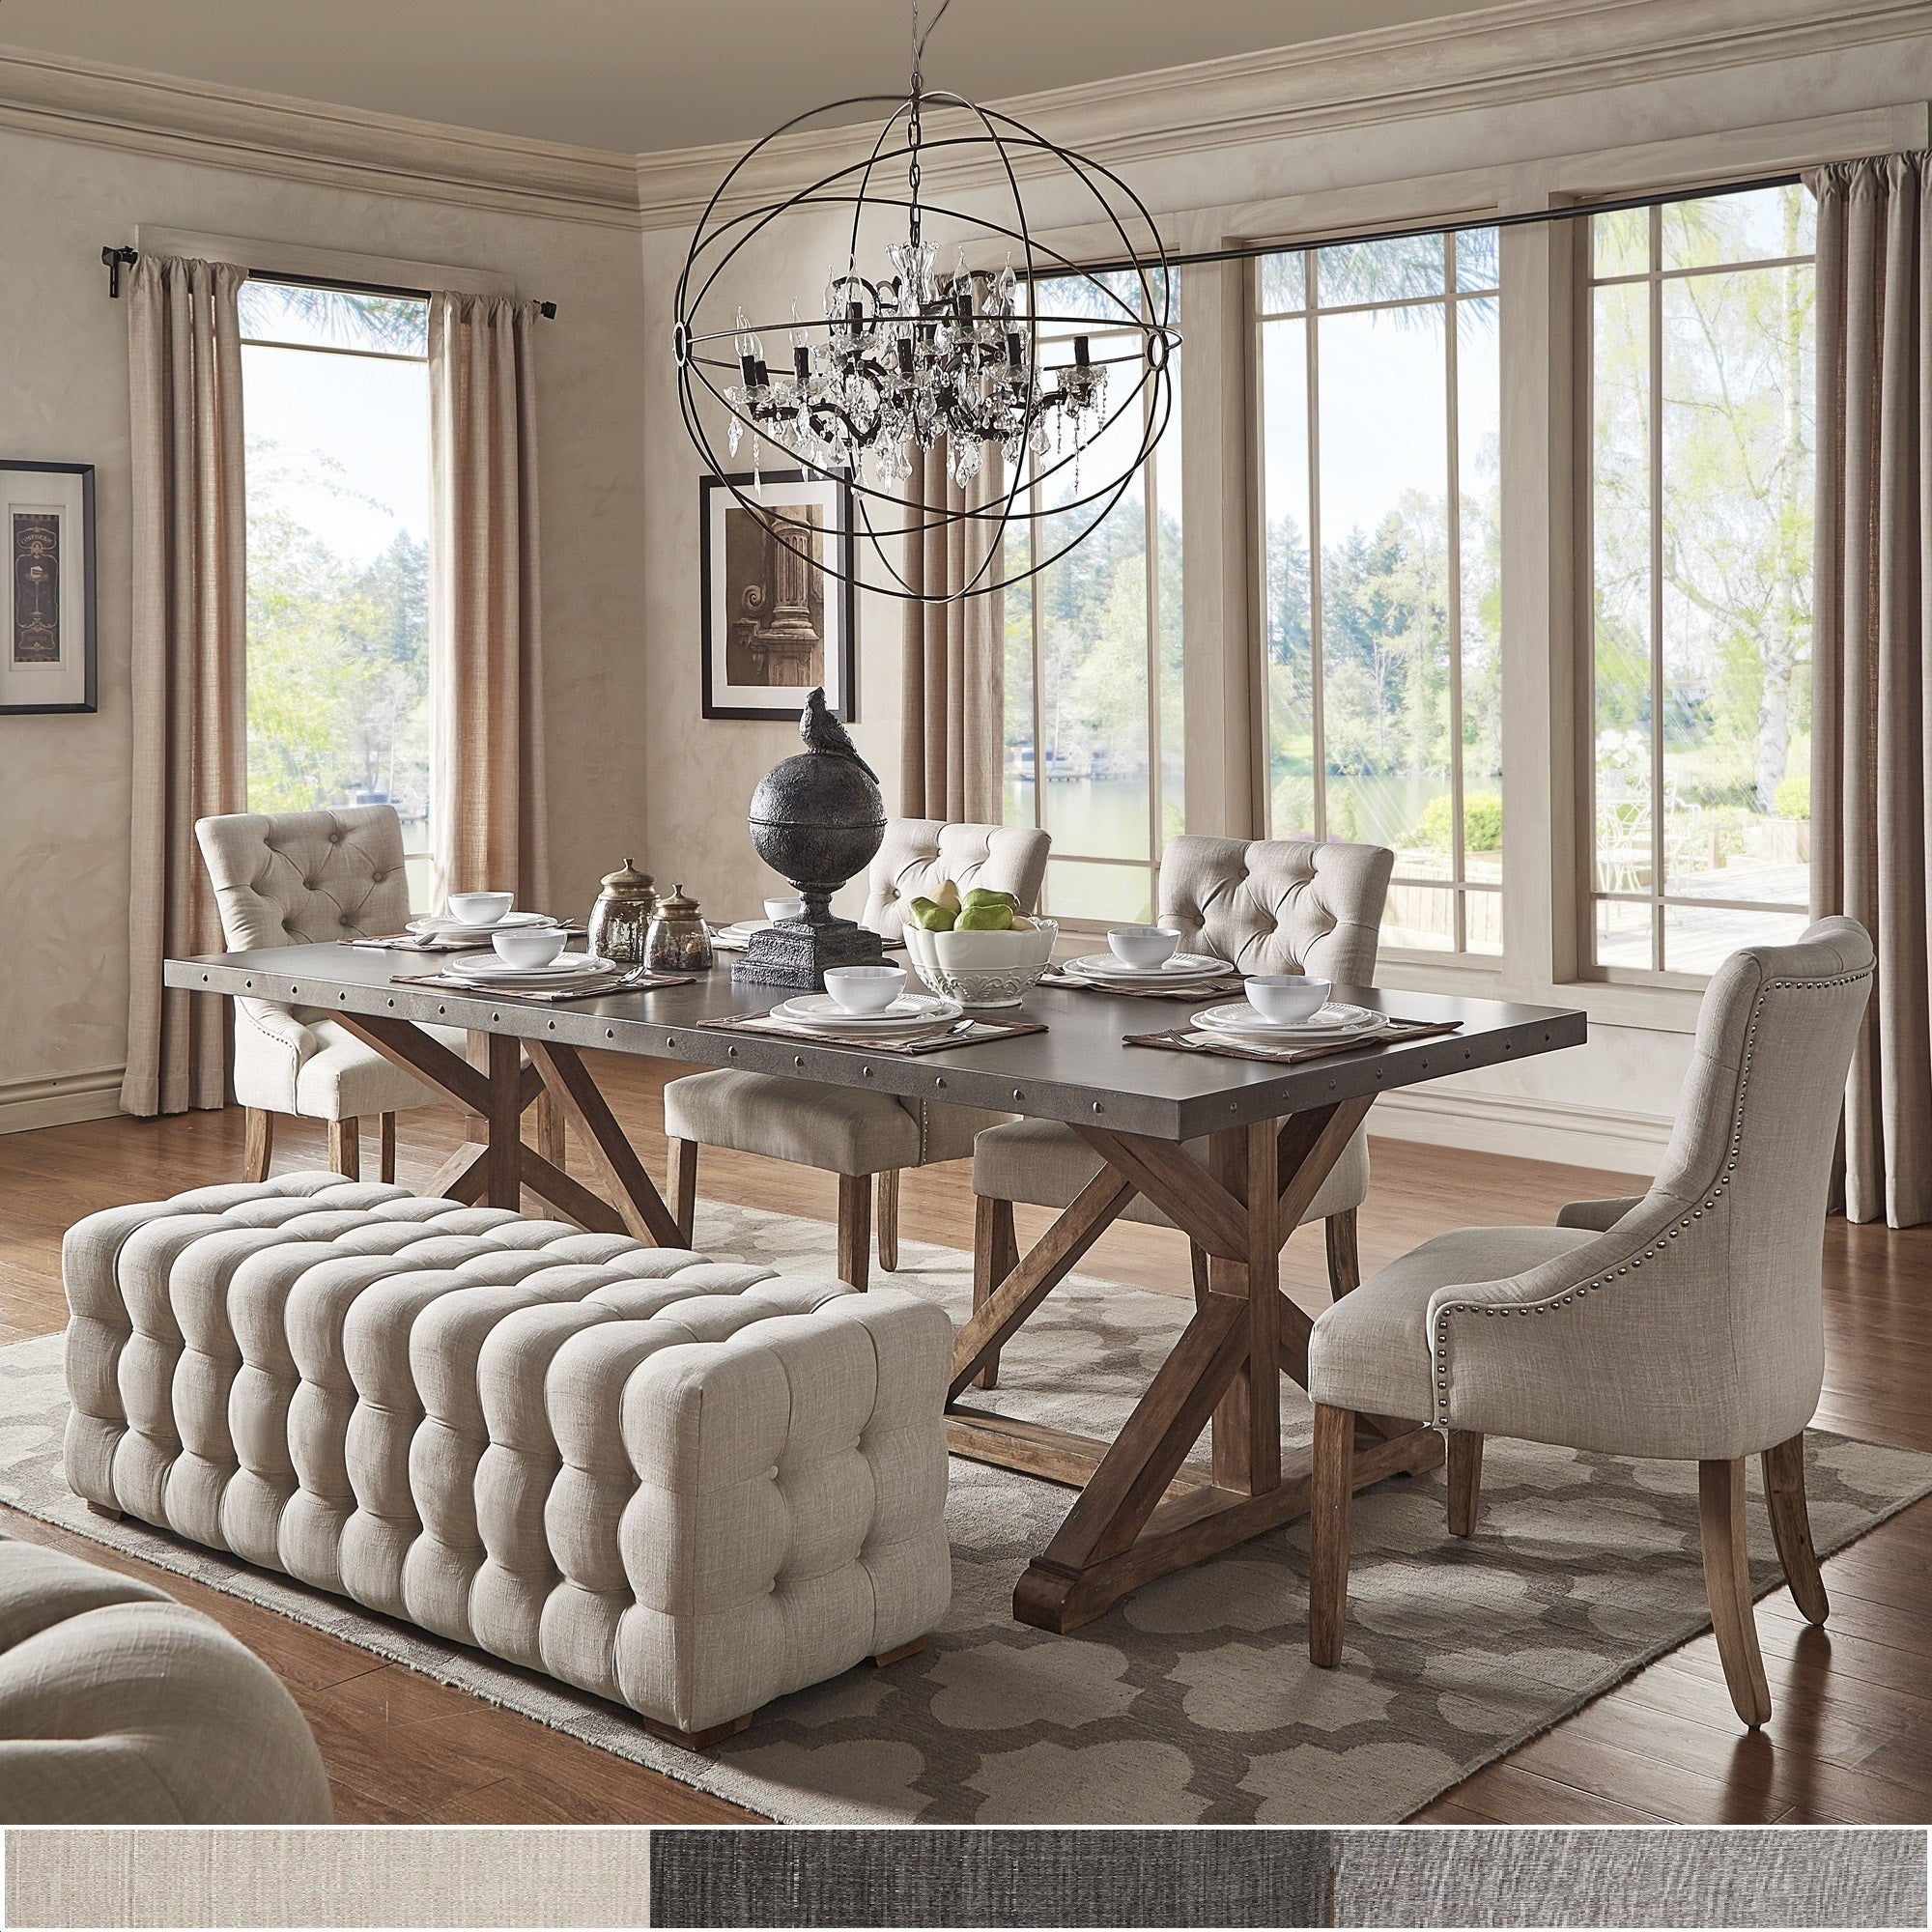 Tremendous The Gray Barn Woolf Rectangular Stainless Steel Top Dining Set Bralicious Painted Fabric Chair Ideas Braliciousco